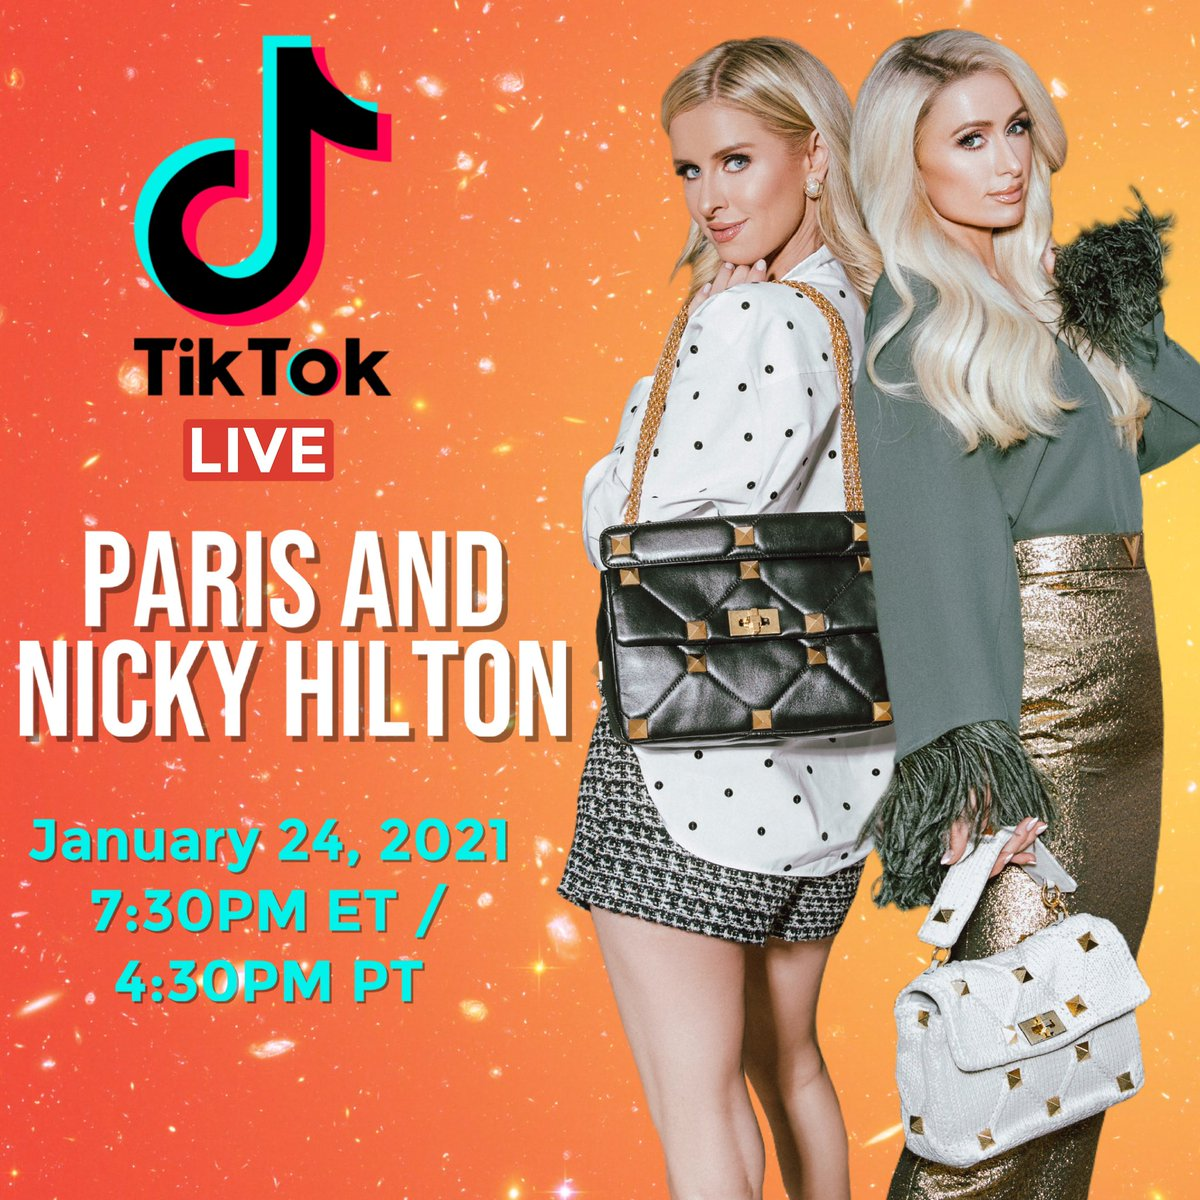 Excited to go Live on @tiktok_us with my sis @NickyHilton today Sunday Jan 24th at 4:30pm PT / 7:30pm ET! Comment below what you want to see us talk about, #TikTok Challenges or anything you have in mind. ✨👸🏼👸🏼✨